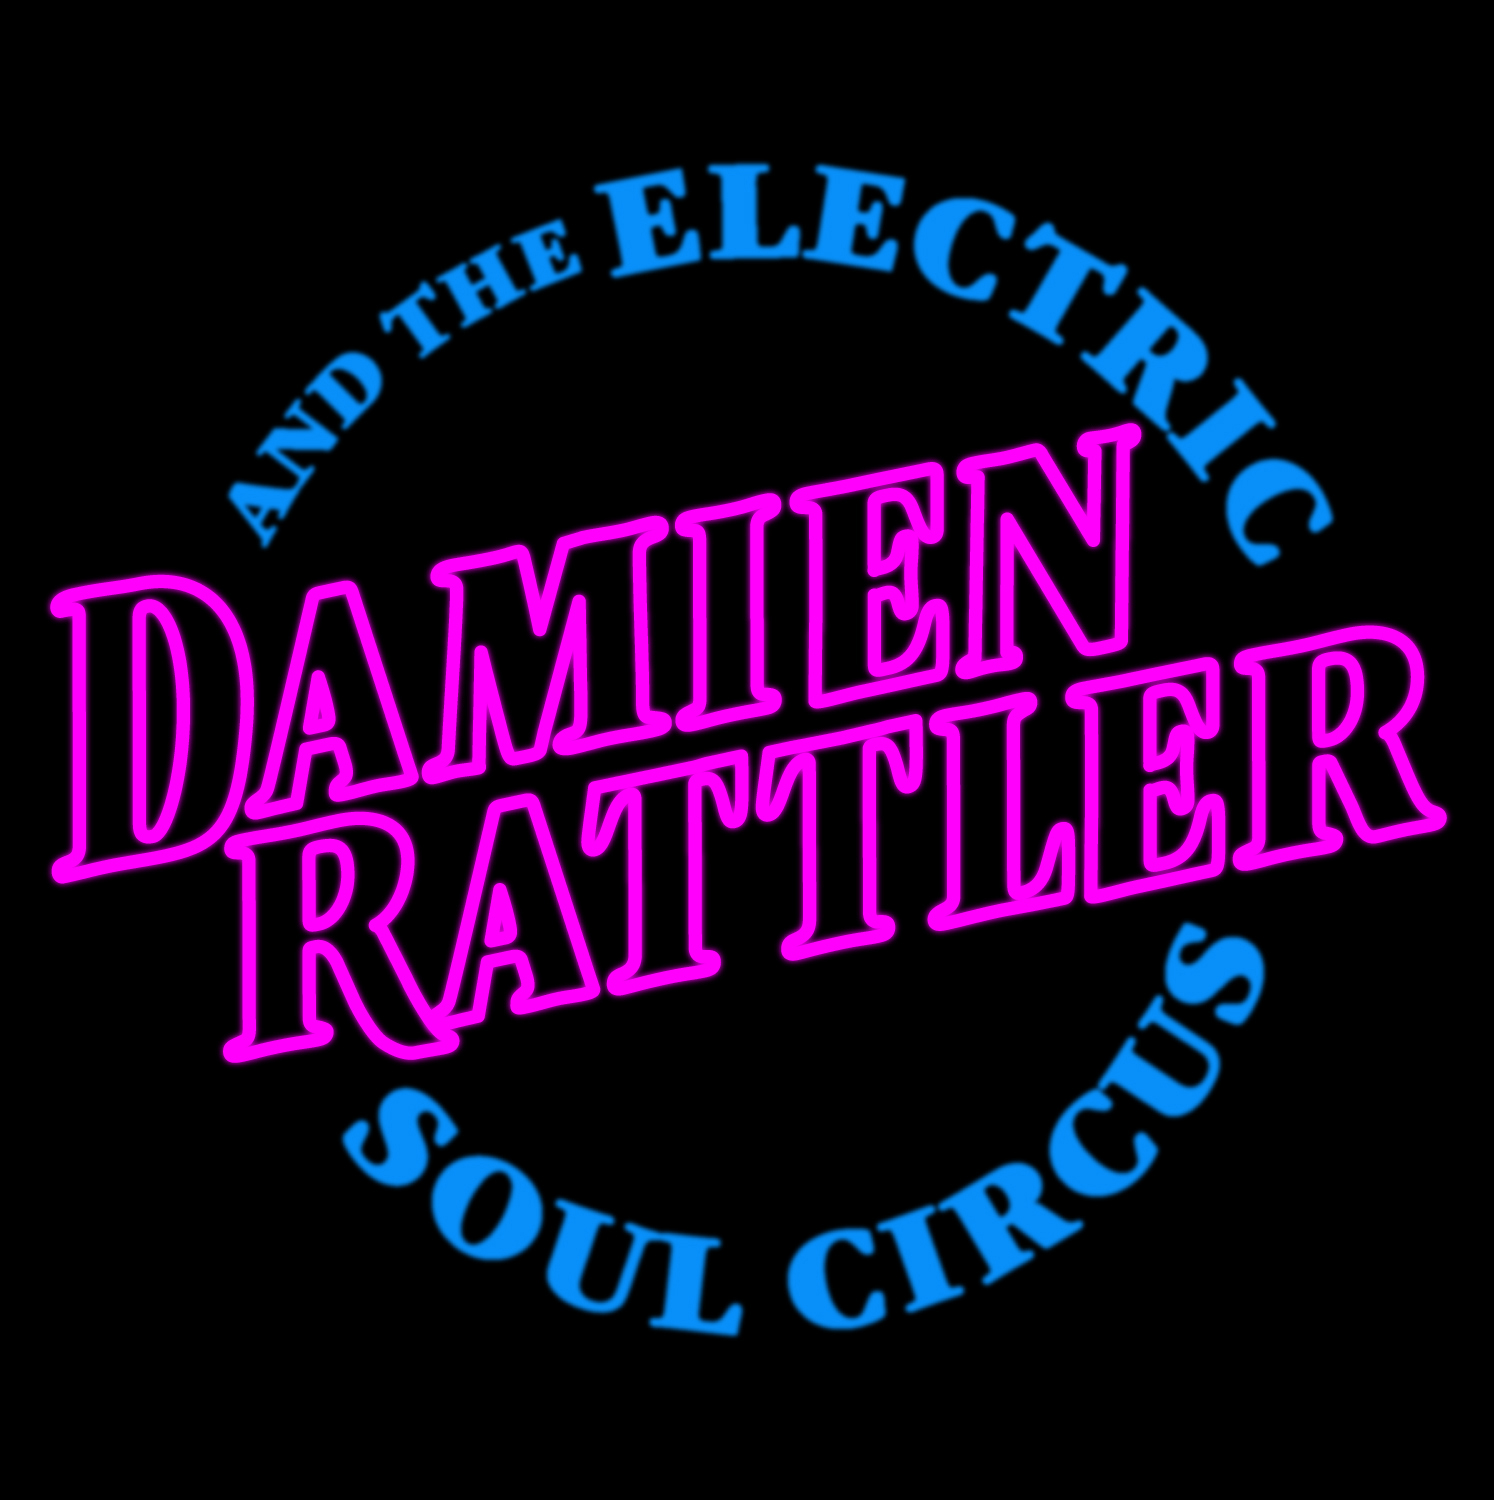 Damien Rattler & the Electric Soul Circus